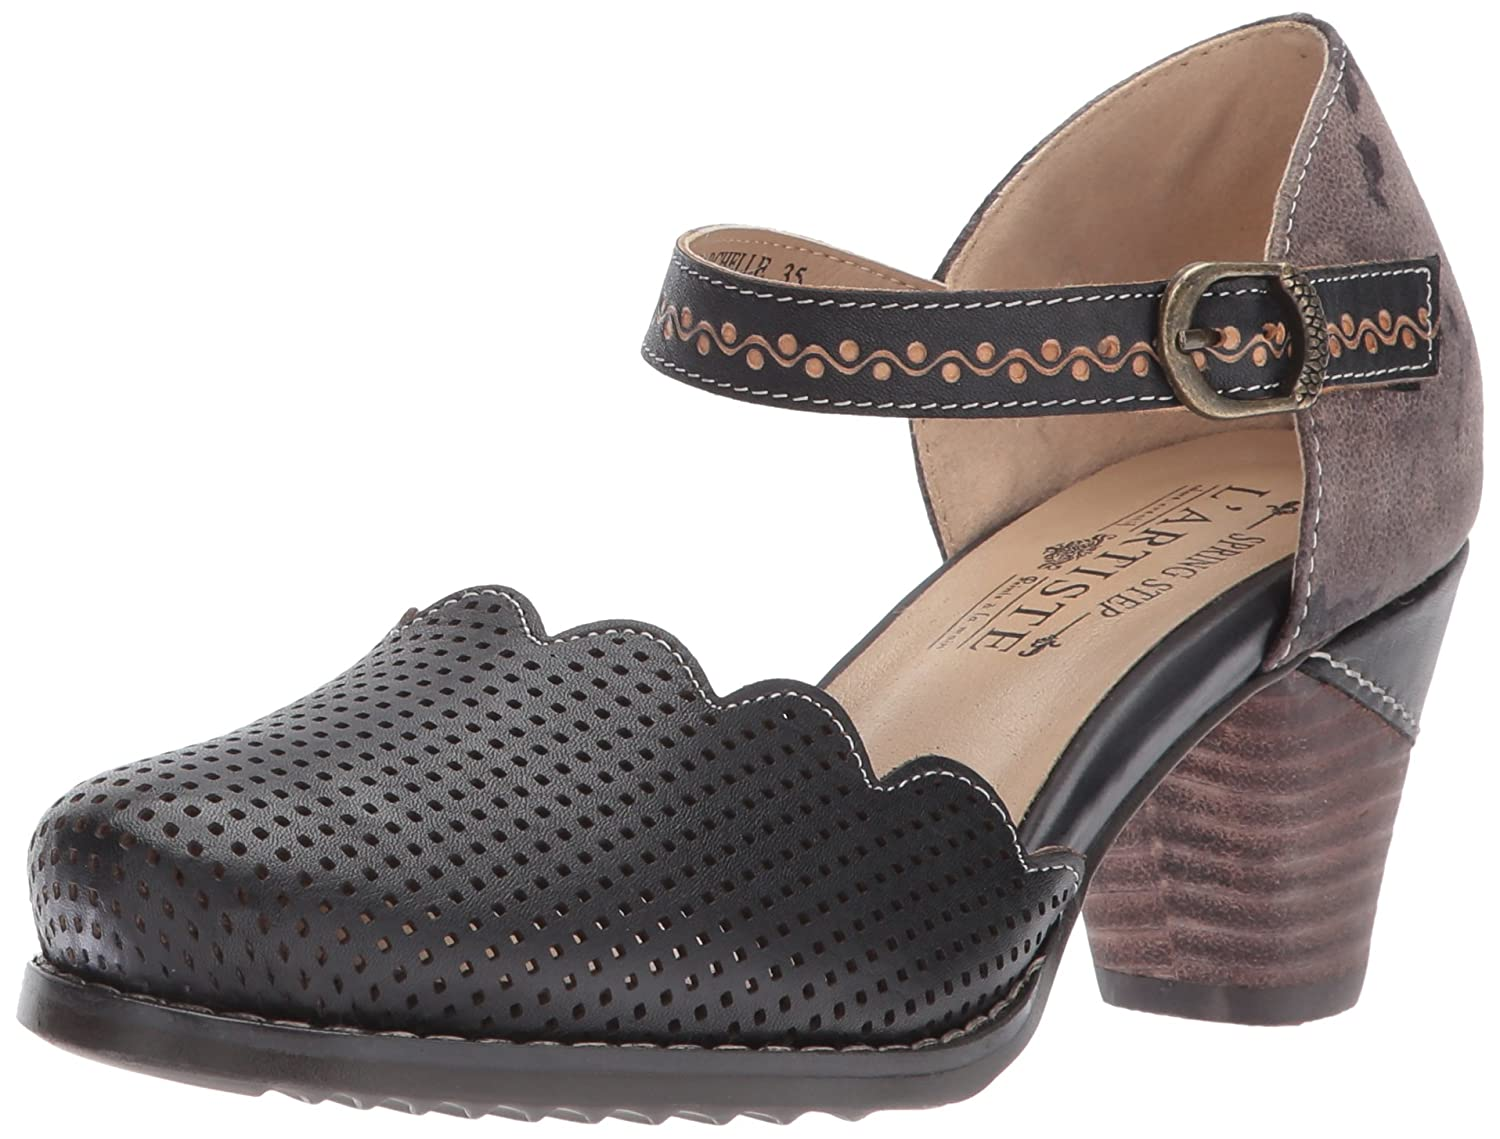 L'Artiste by Spring Step Women's Parchelle Mary Jane Flat B06XKQ63FW 38 EU/7.5 - 8 M US|Black